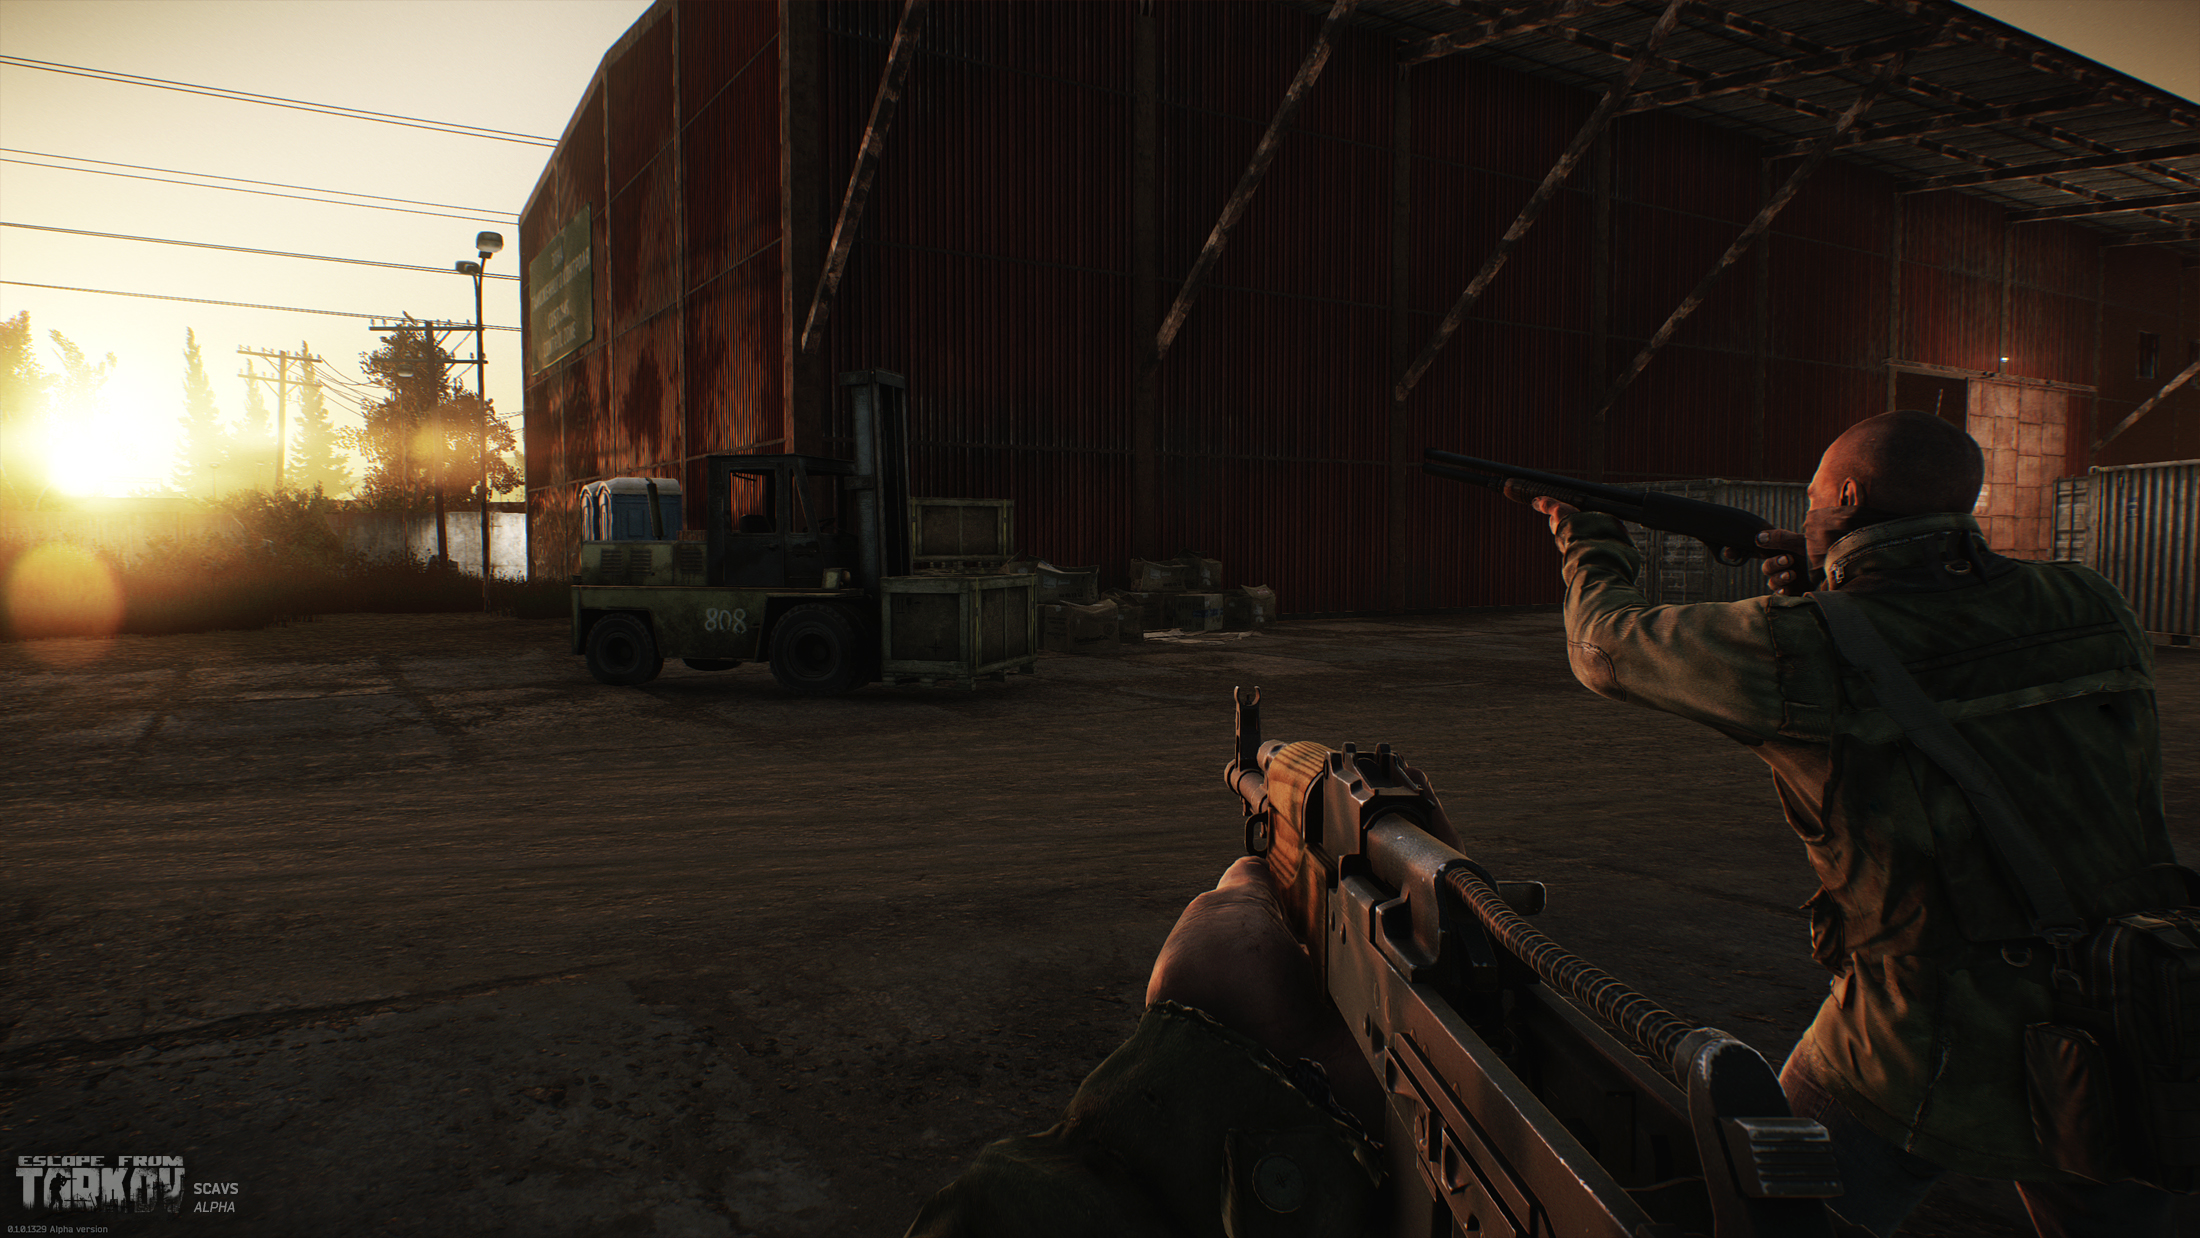 Escape from Tarkov official page